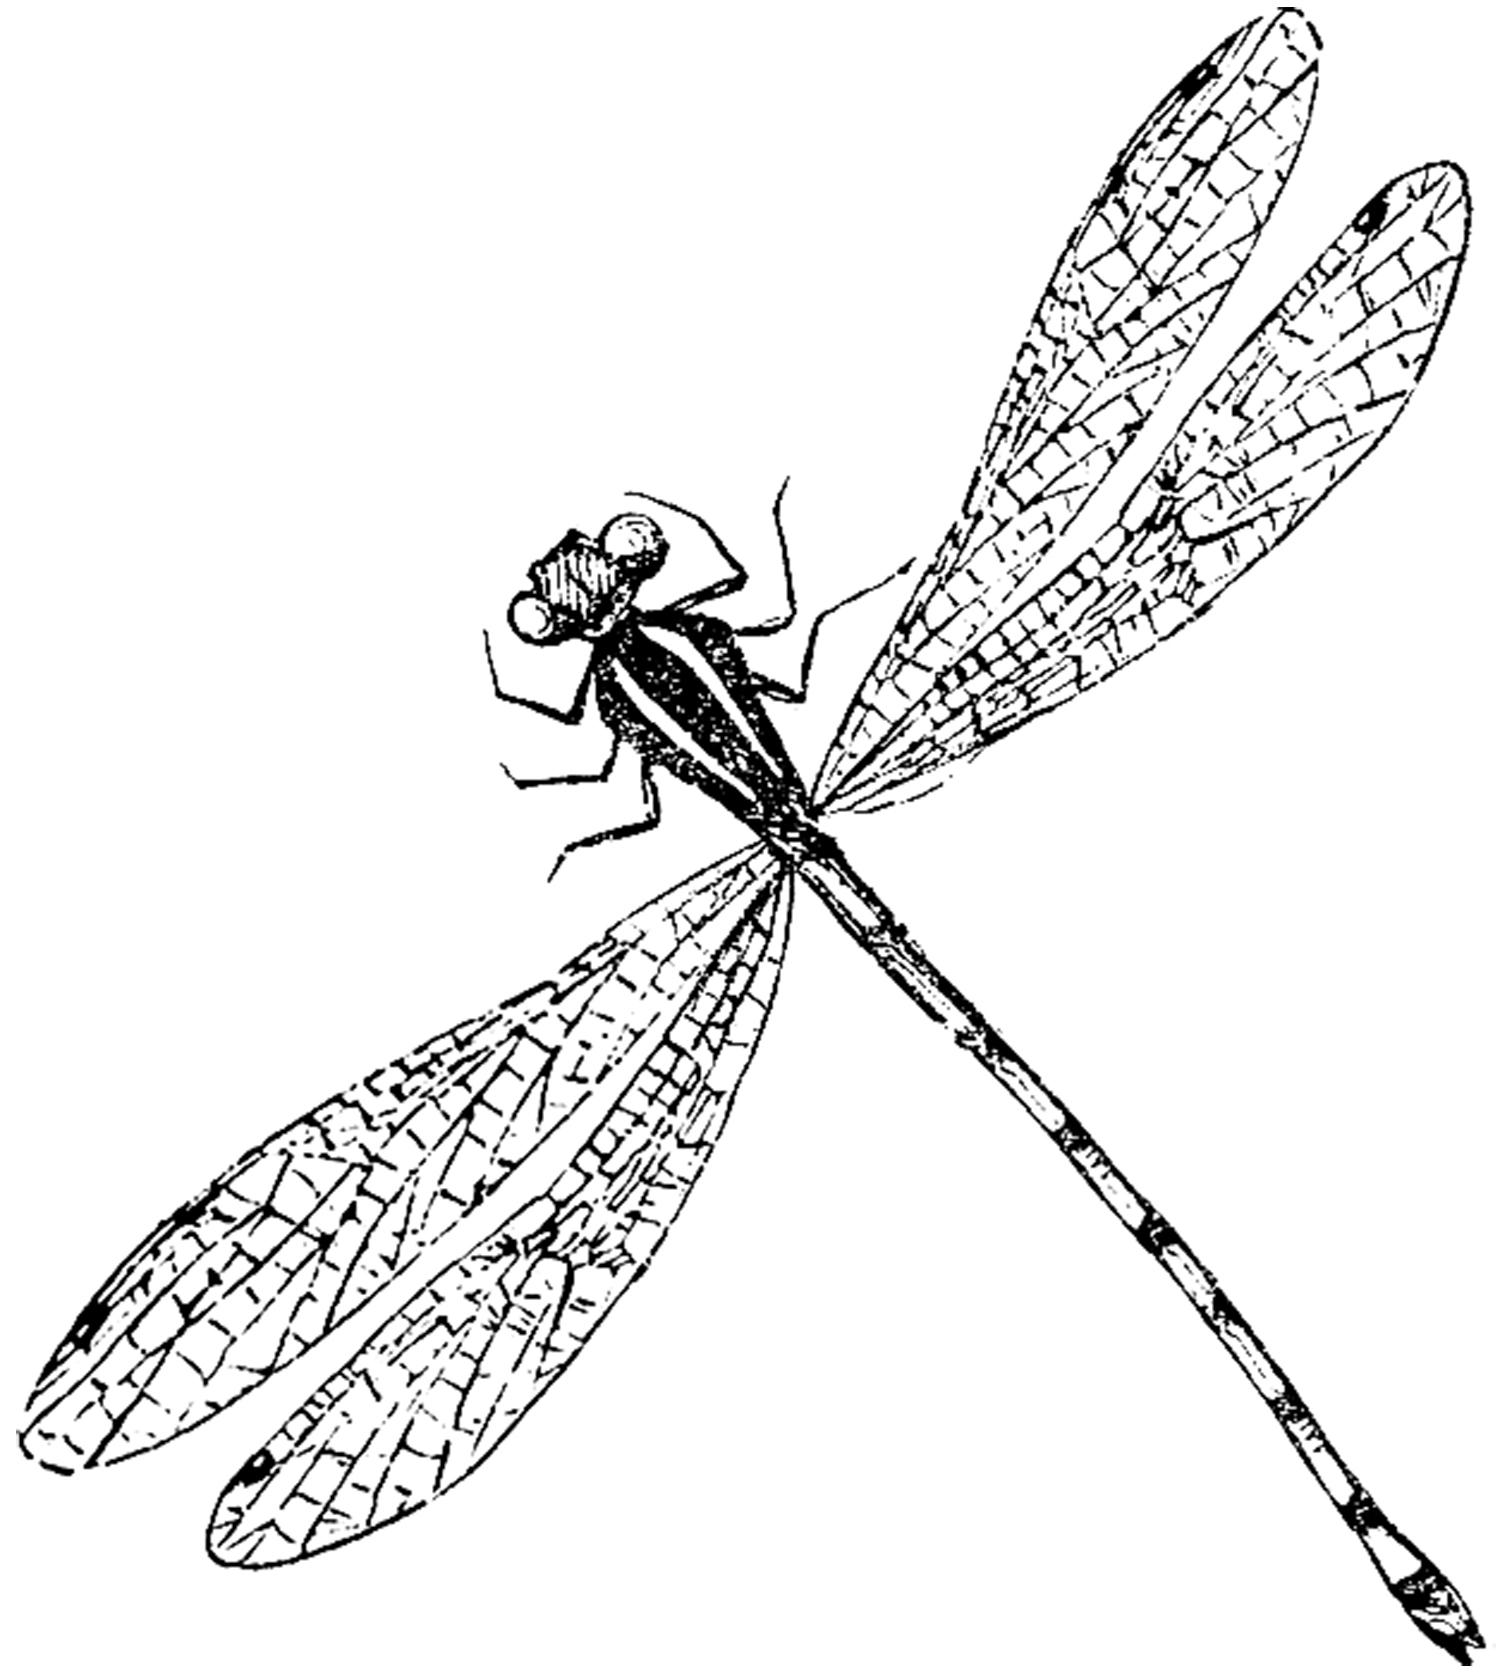 6 Dragonfly Images! - The Graphics Fairy